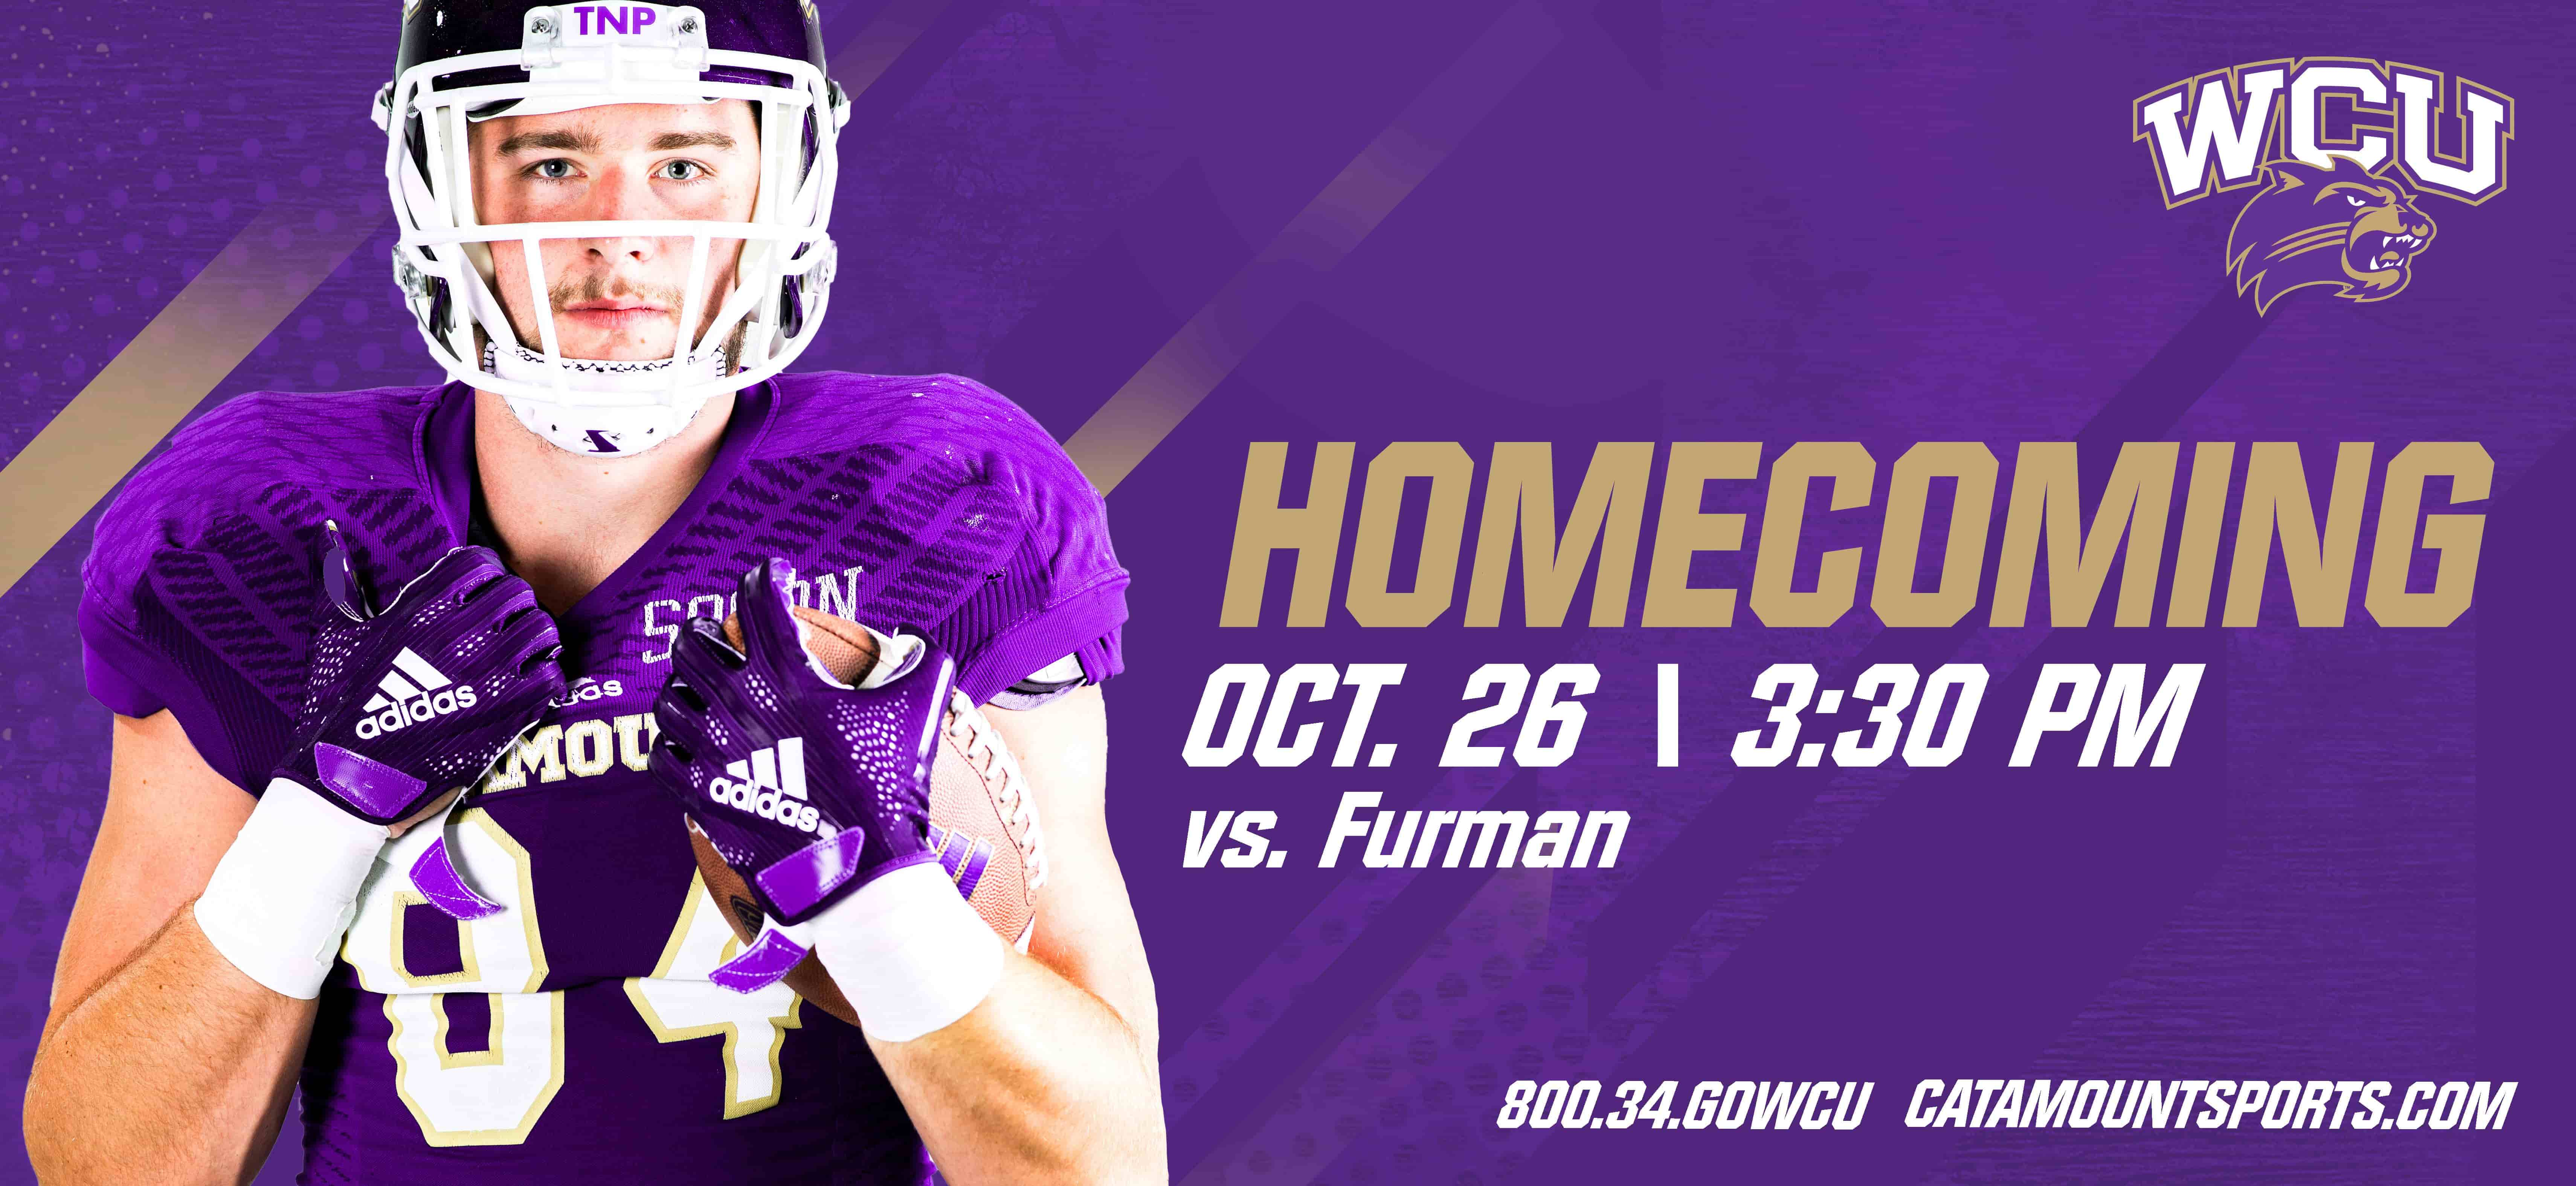 Homecoming Promotion picture, with a catamount player facing the camera in front of a pruple back groung, TEXT: OCT 26 / 3:30pm VS FURMAN